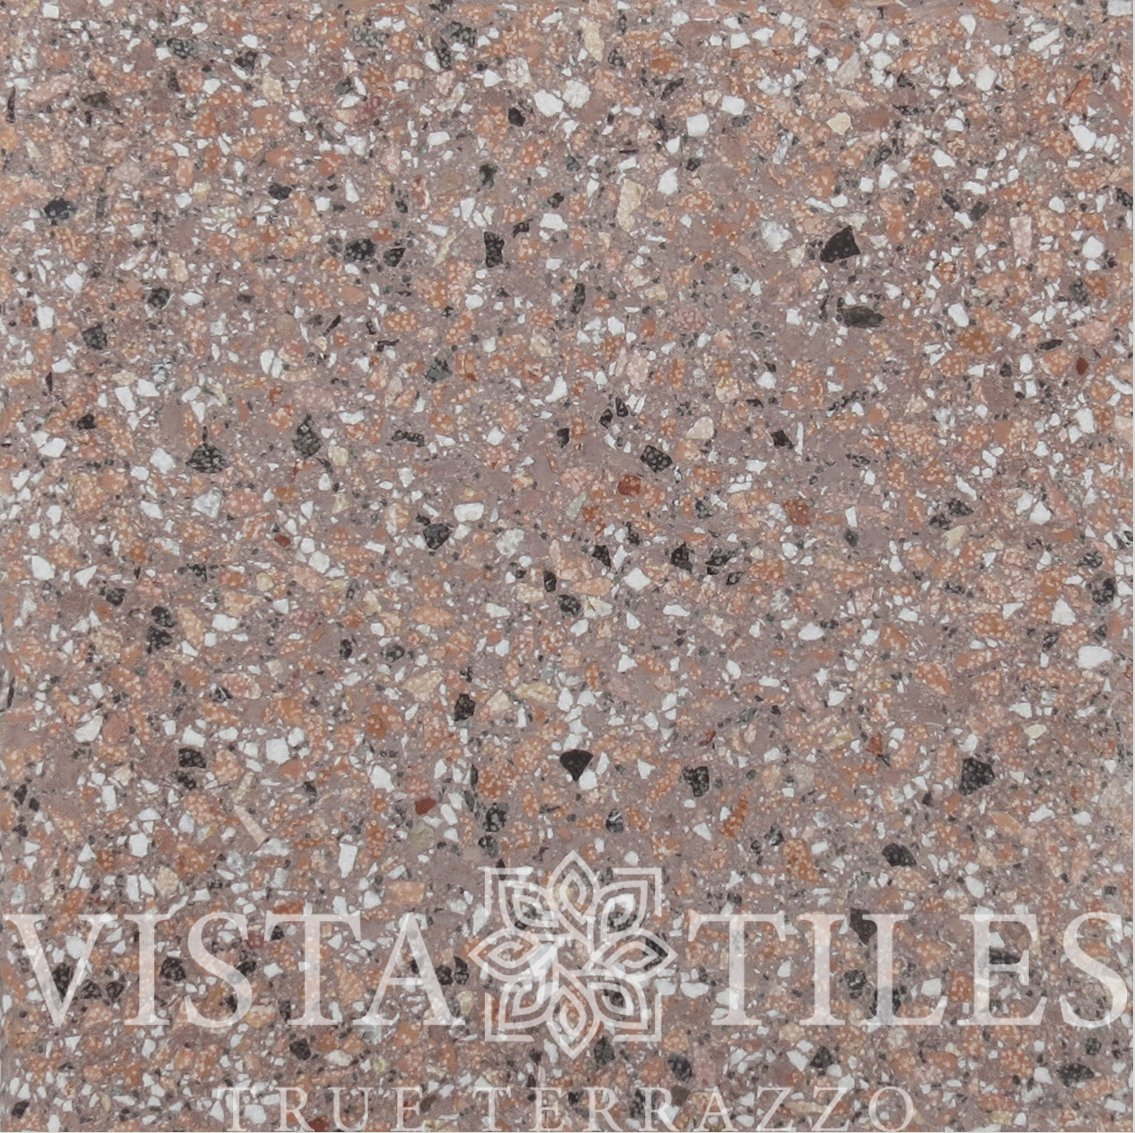 high quality precast cement base terrazzo floor wall tile for indoor and outdoor commercial and residential project 7x7 muc 23